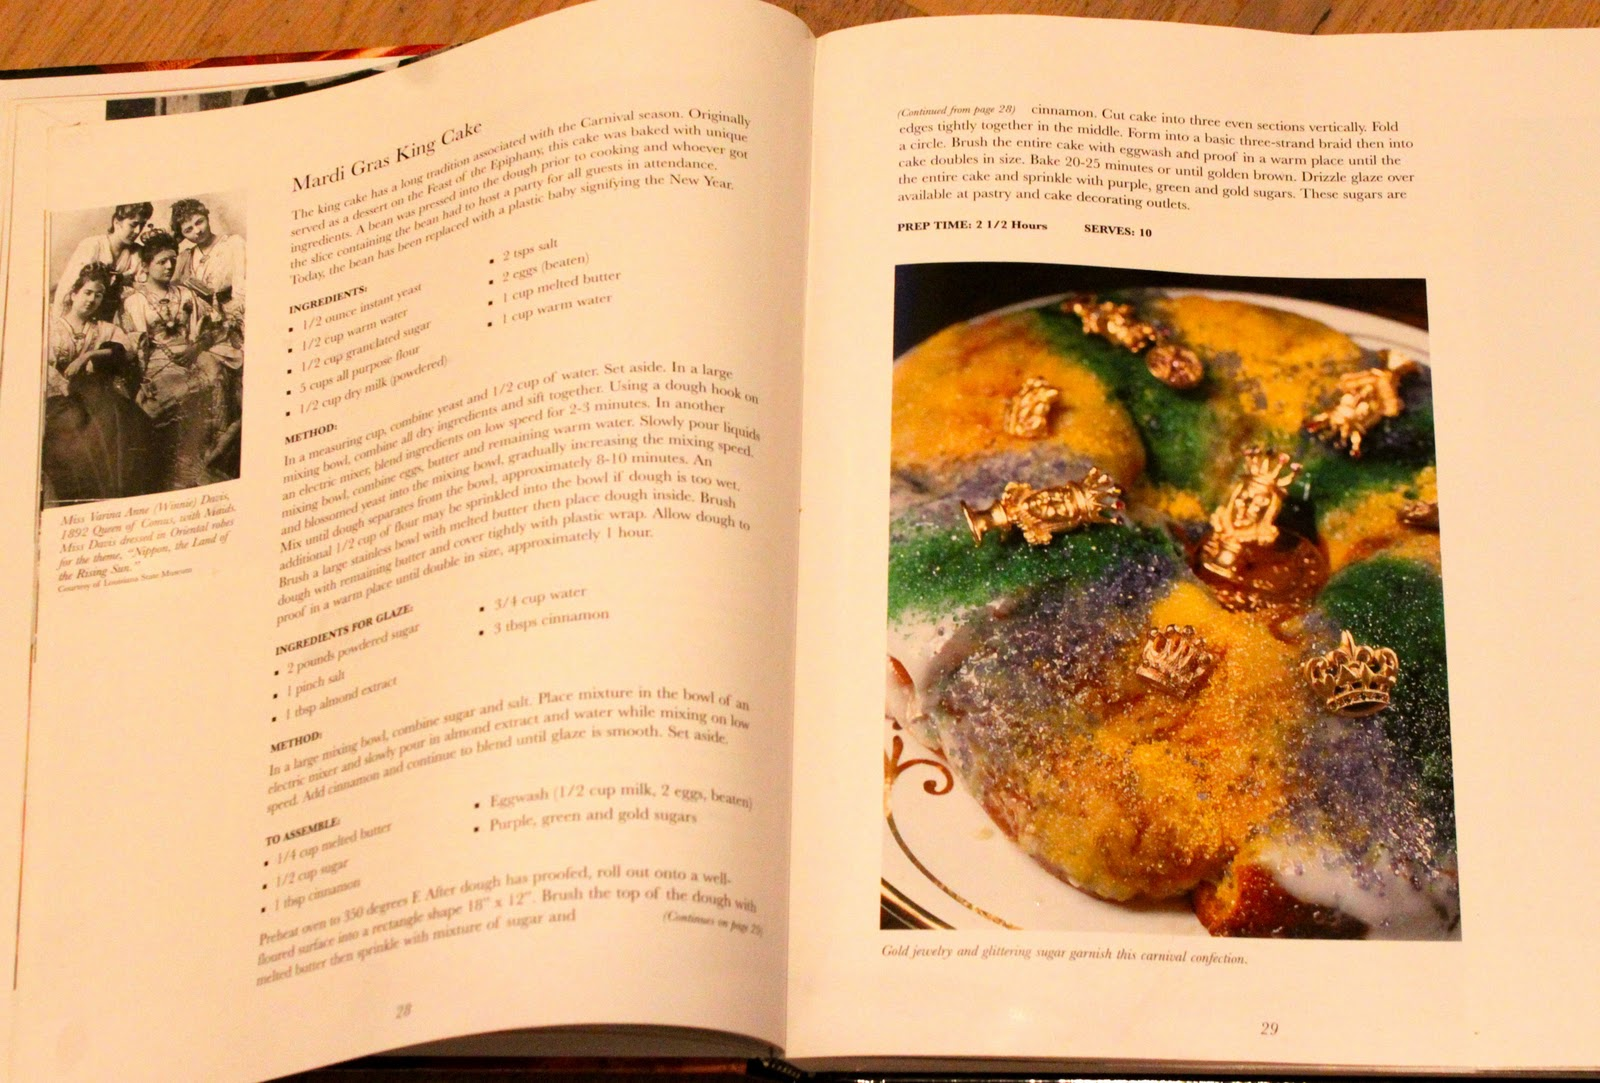 John Folse King Cake Recipe